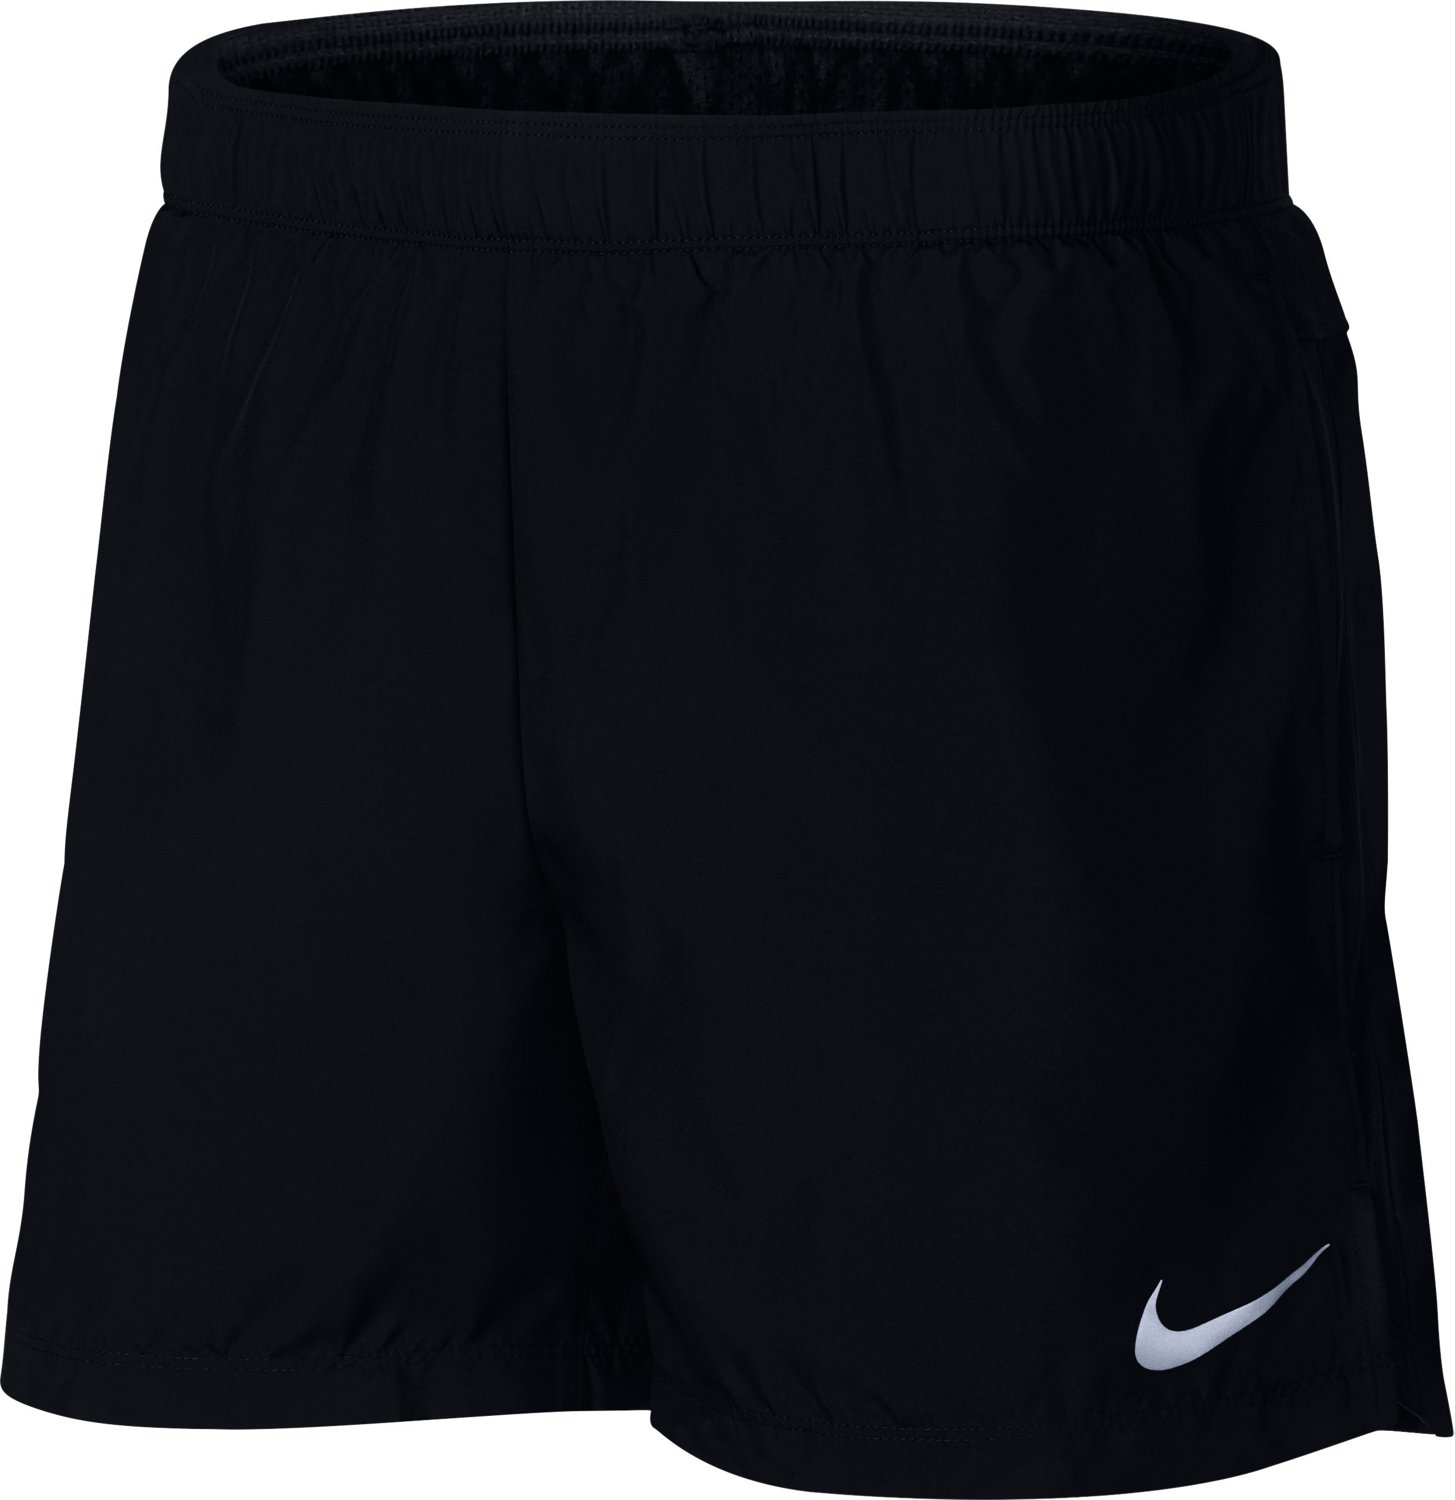 super popular 64e4b d85fa Display product reviews for Nike Men s Challenger 5 in Running Shorts